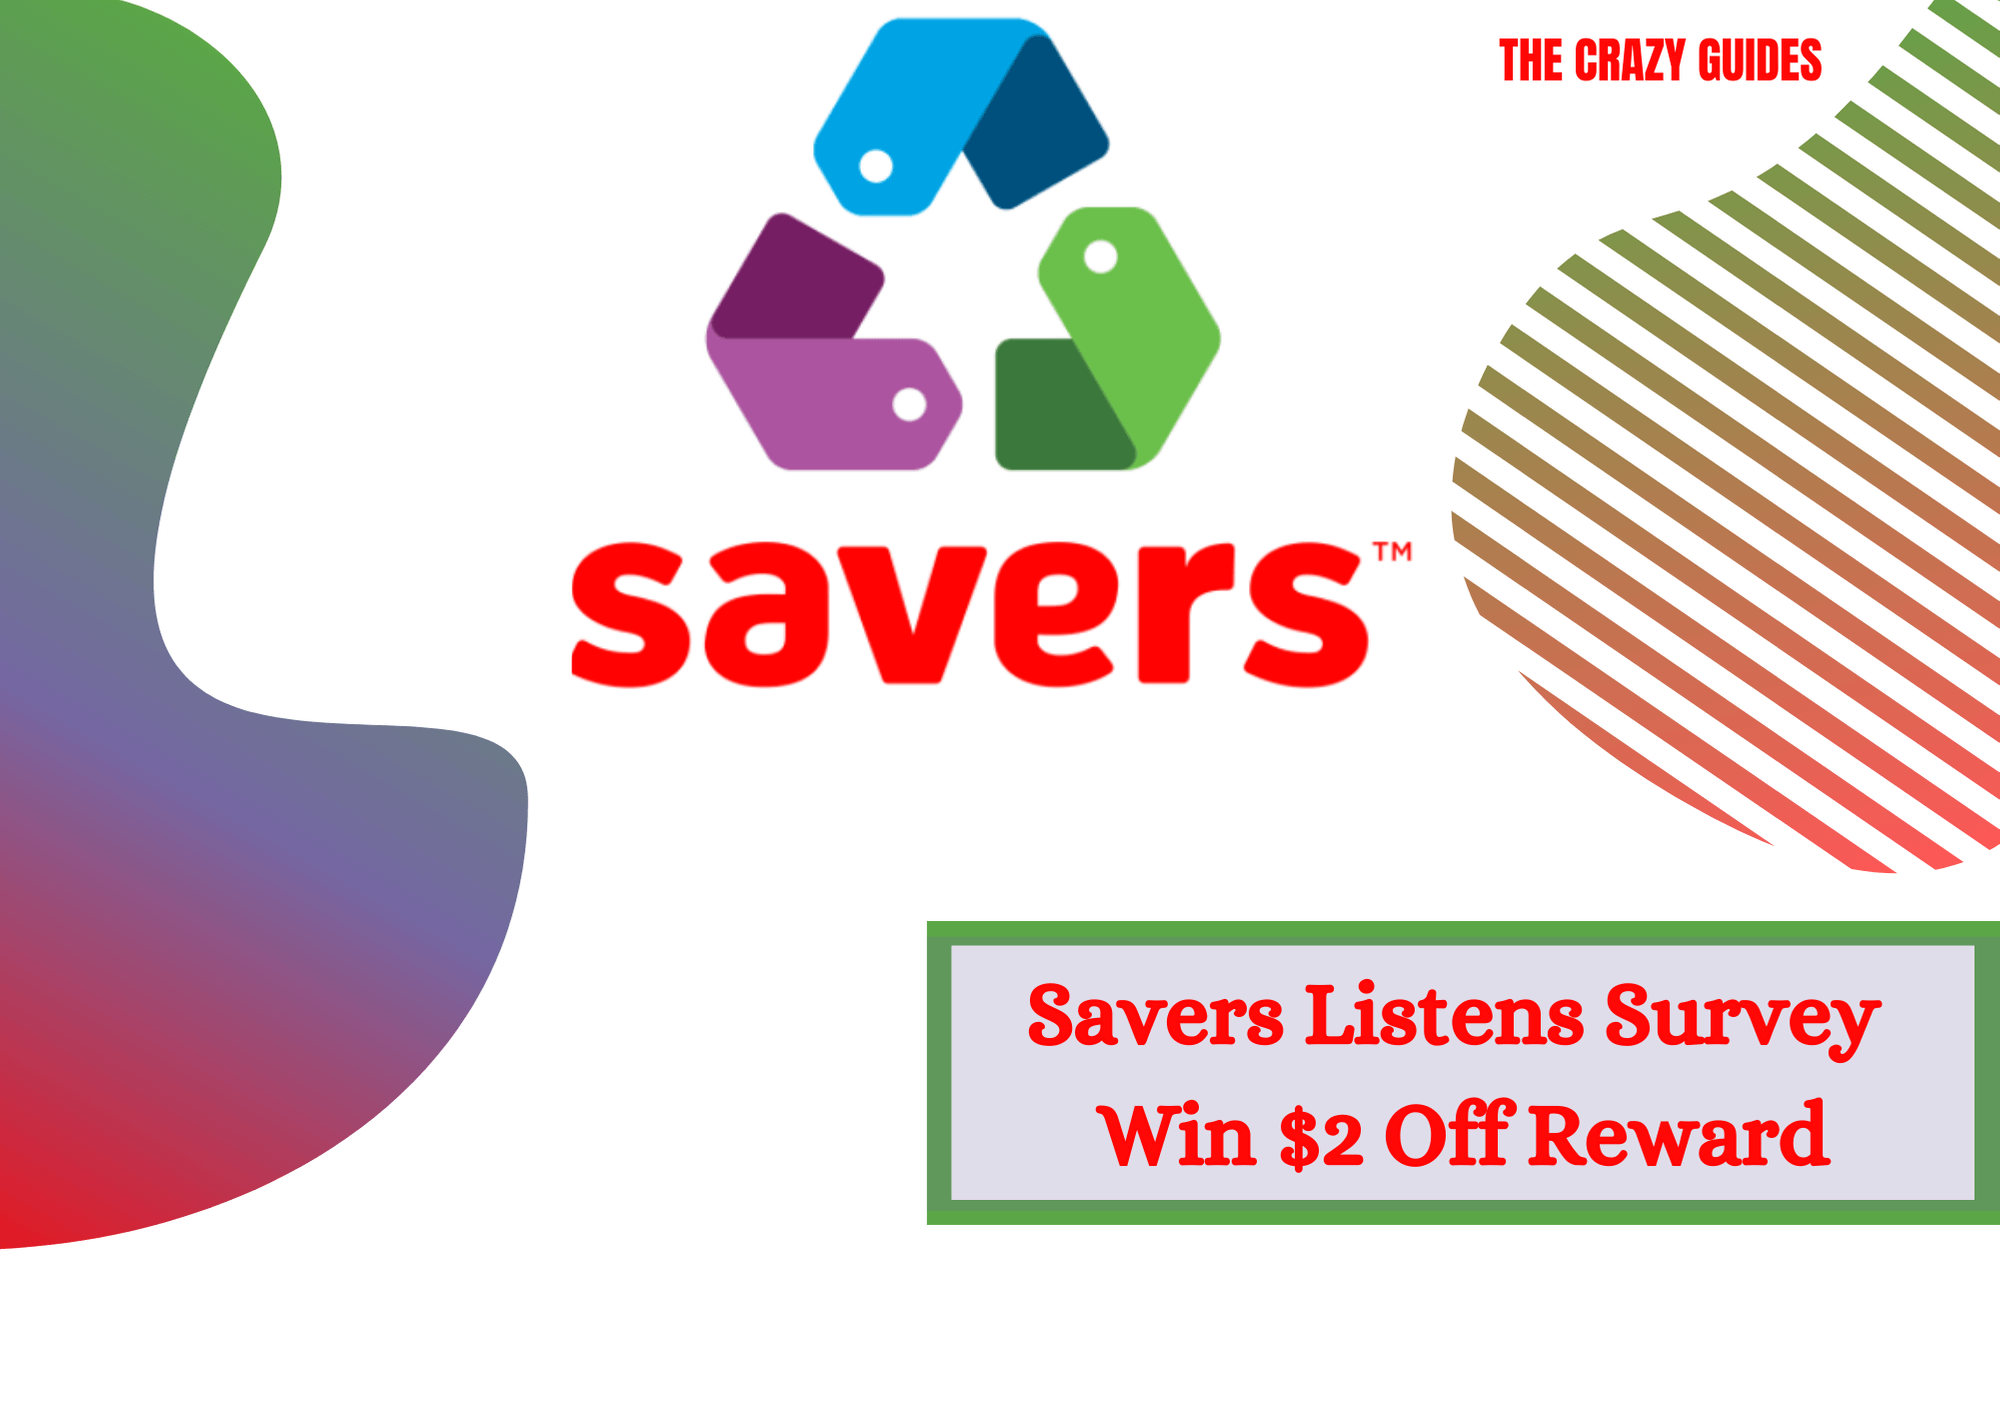 Saverslistens survey